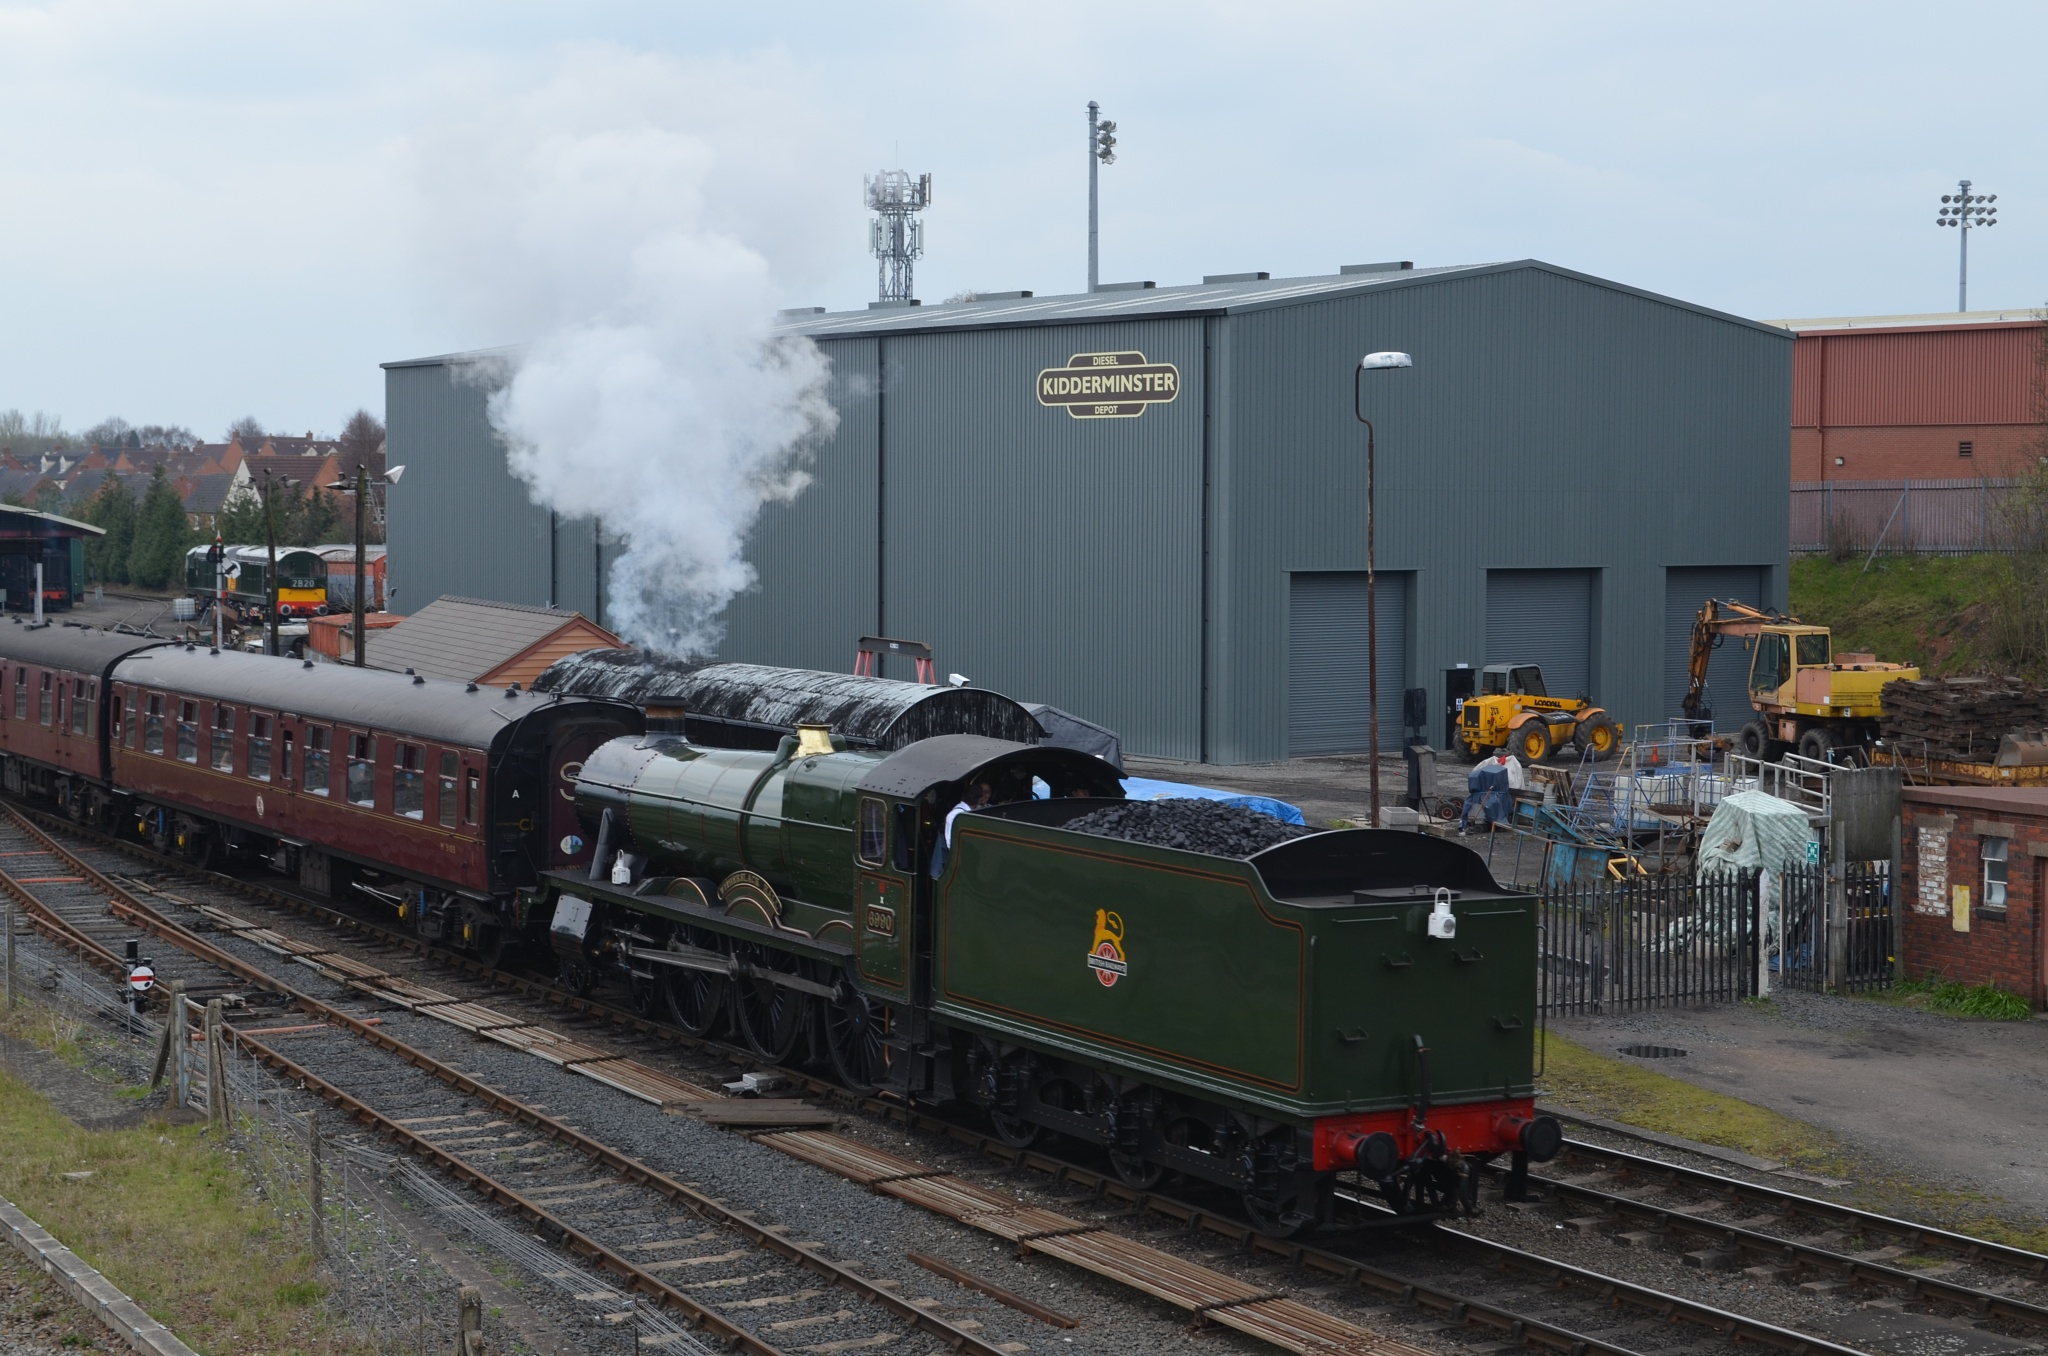 WITHERSLACK HALL ENTERING kIDDERMINSTER by adrian.williams.58323